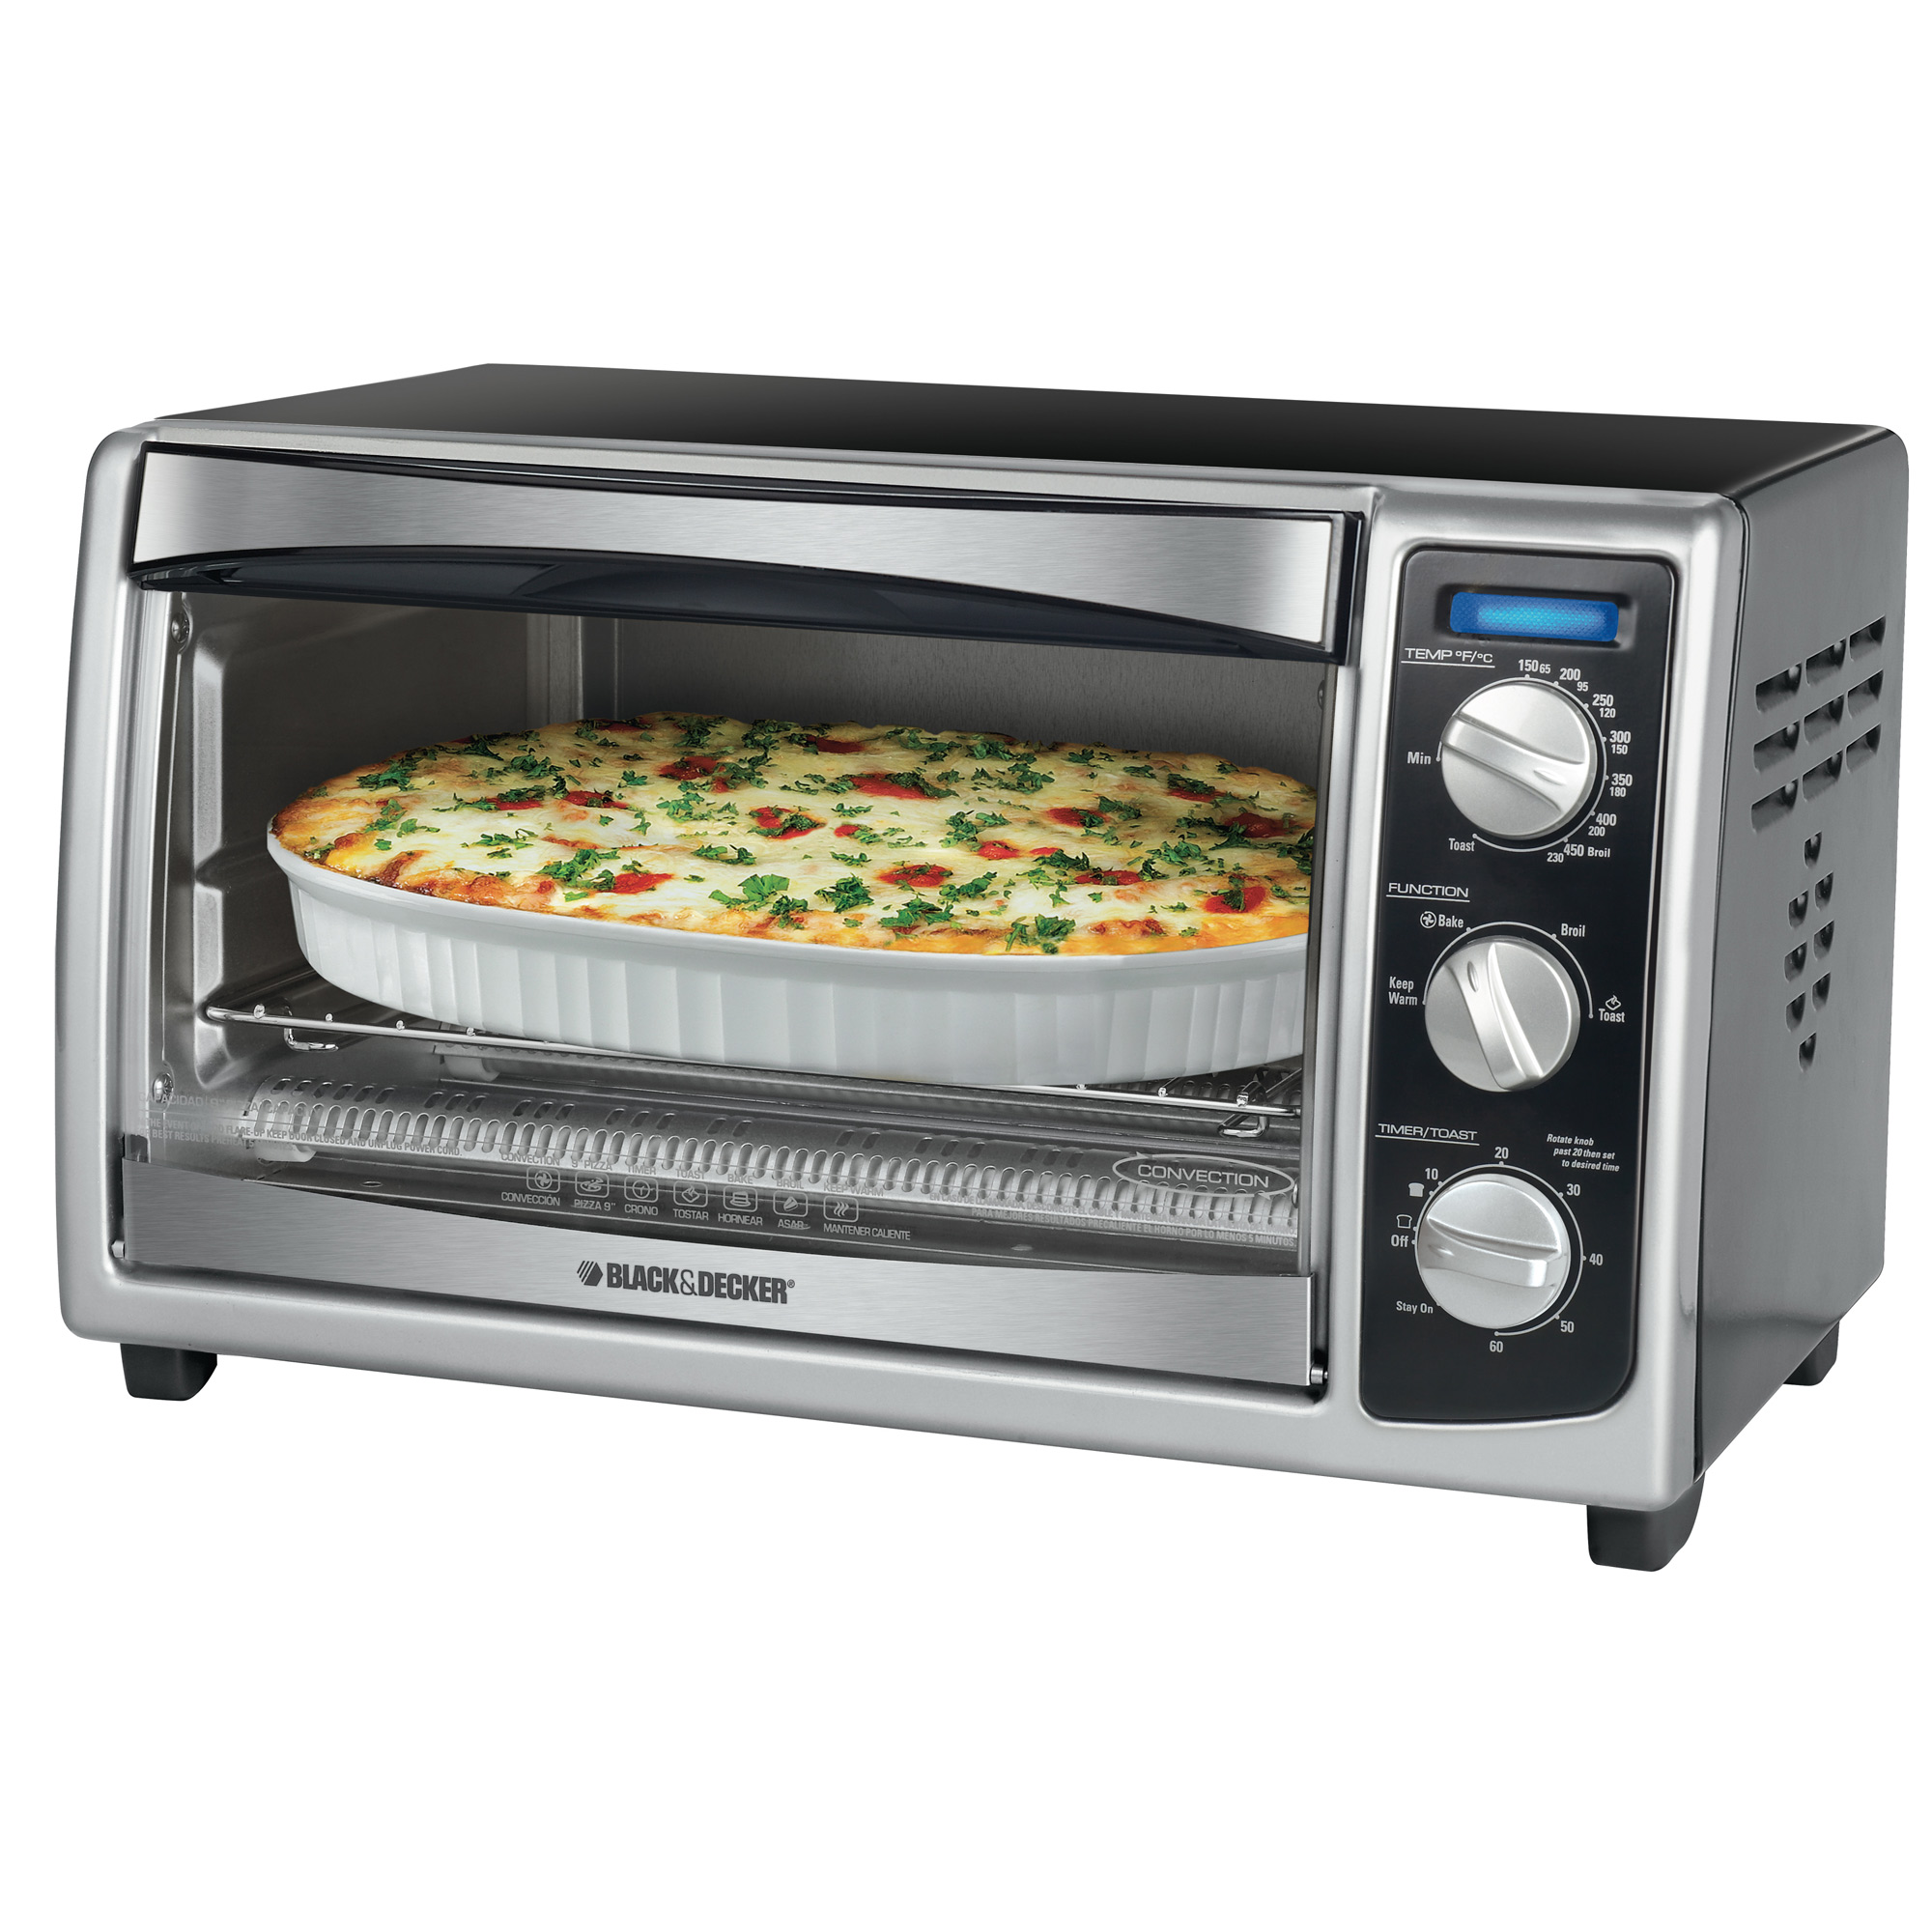 Countertop Convection Oven Wiring Diagram Trusted Diagrams Buy A Black Decker Toaster Www Ovens